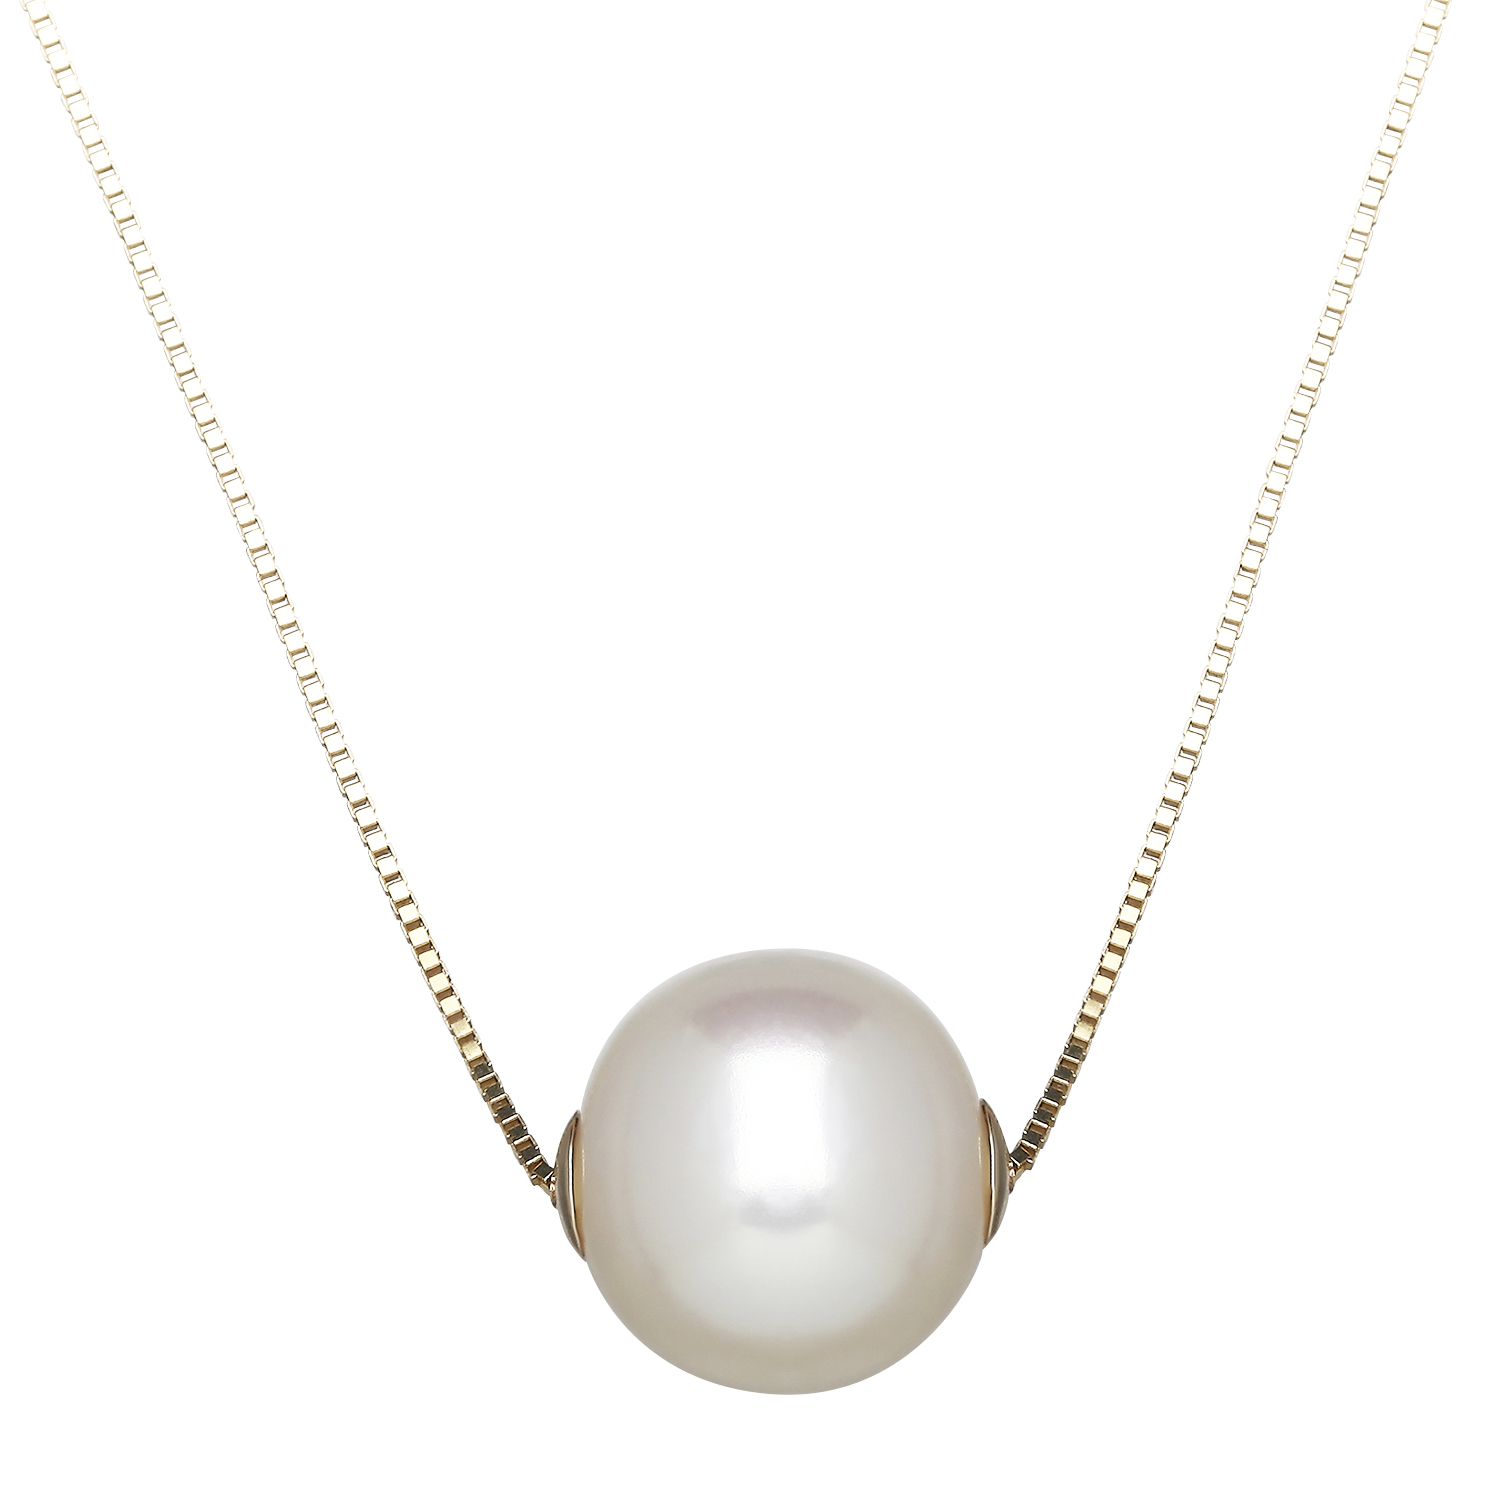 "14K Yellow Gold 18"" Box Chain with Single White Pearl by Honora"